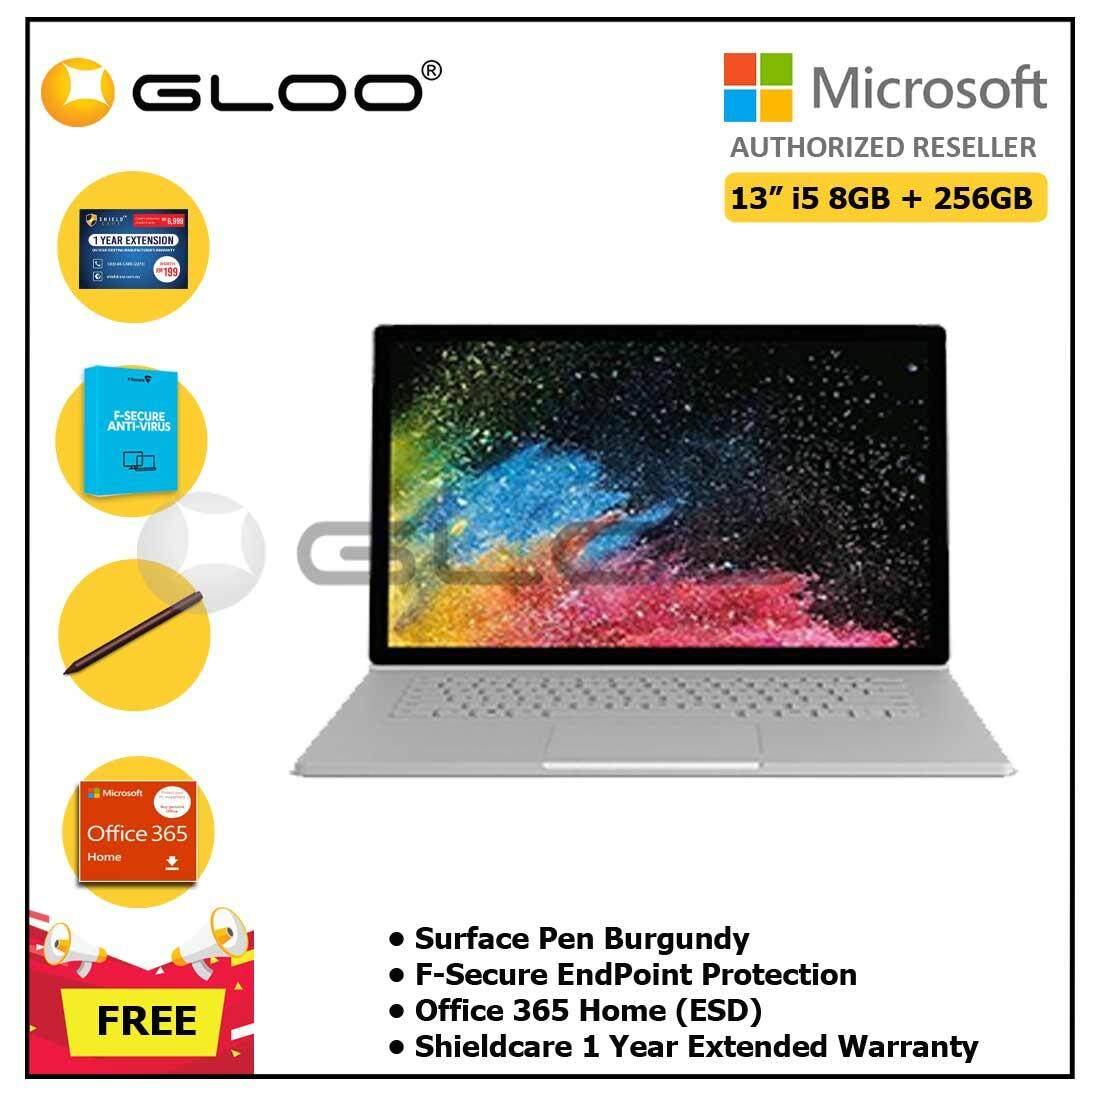 """Microsoft Surface Book2 13"""" Core i5/8GB RAM - 256GB + Shieldcare 1 Year Extended Warranty + F-Secure EndPoint Protection + Office 365 Home ESD + Pen Burgundy"""